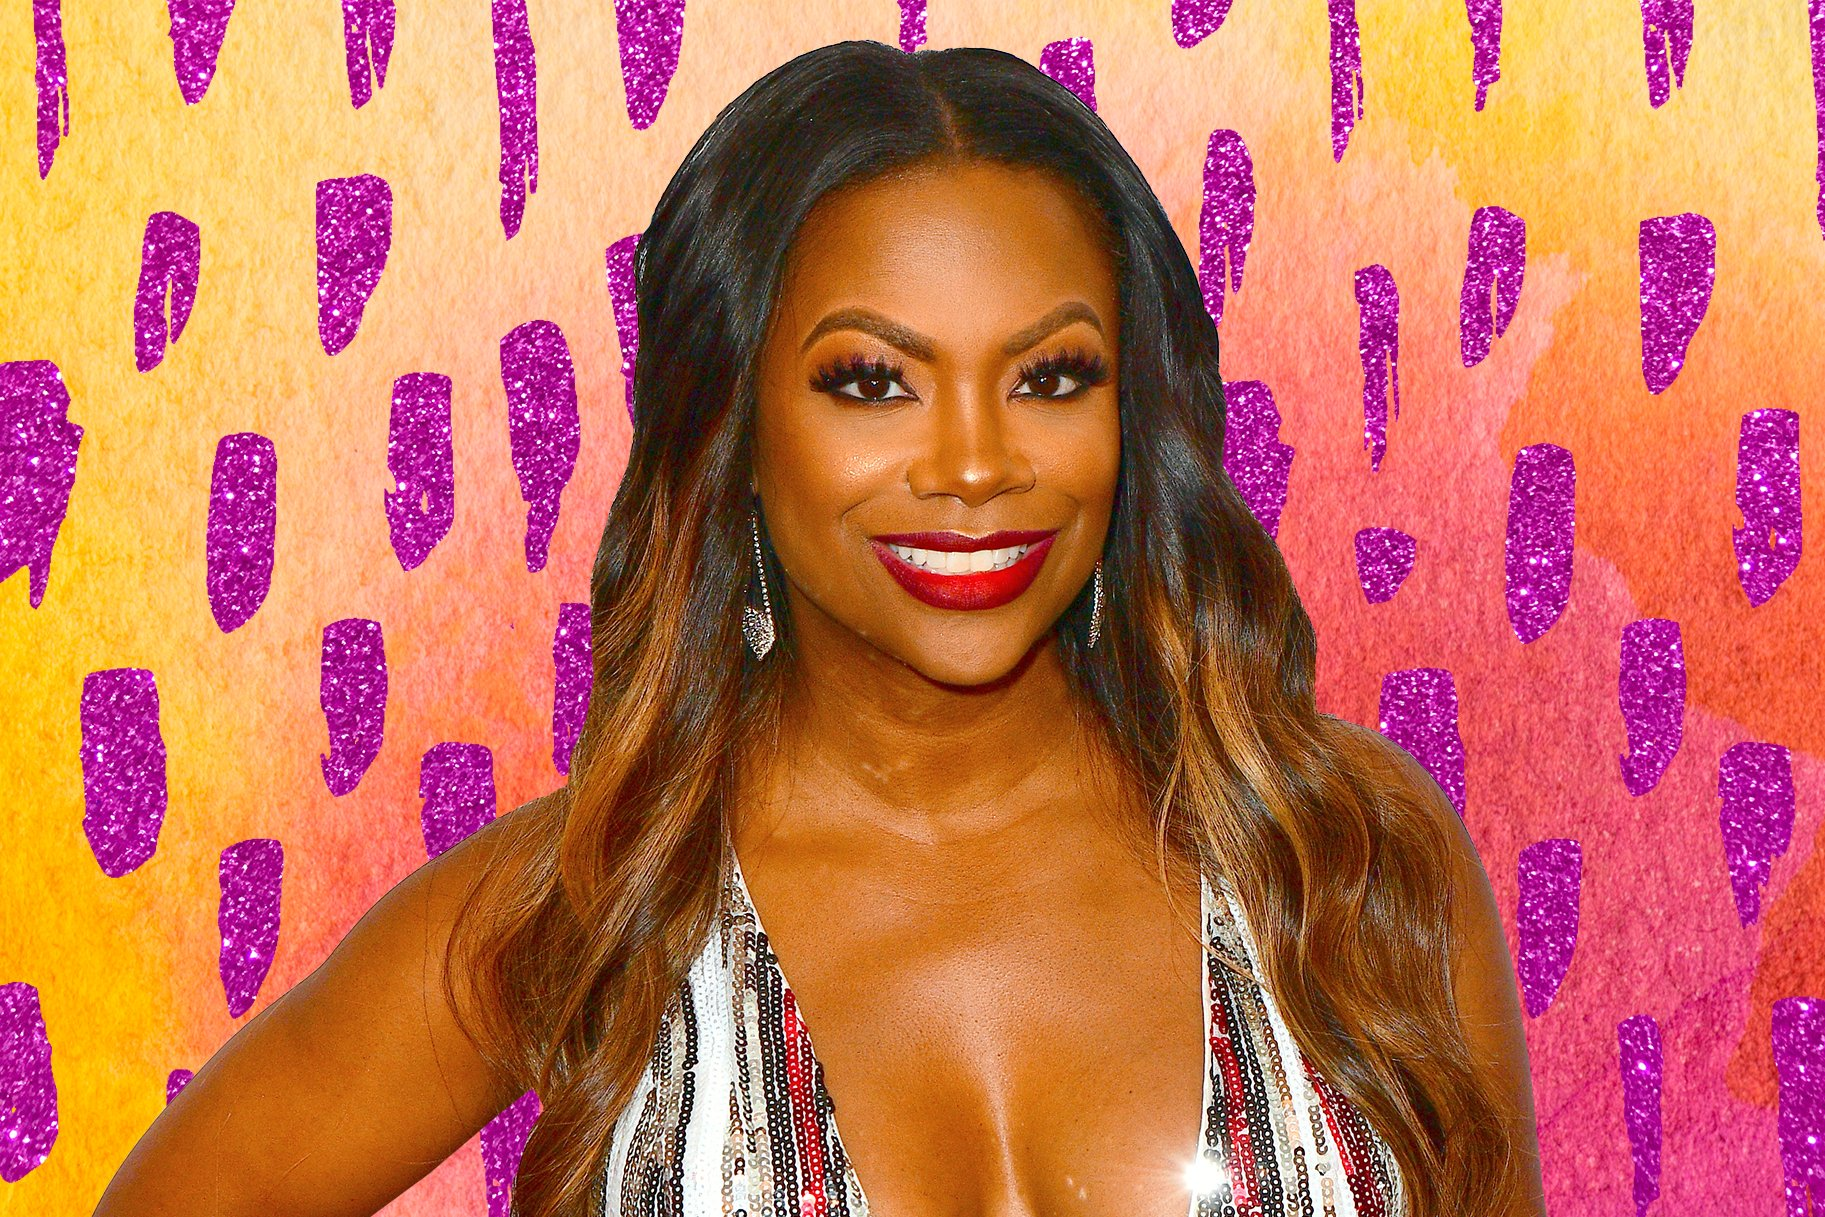 Kandi Burruss Is Showing Off Her Flawless Legs In This Bomb Outfit